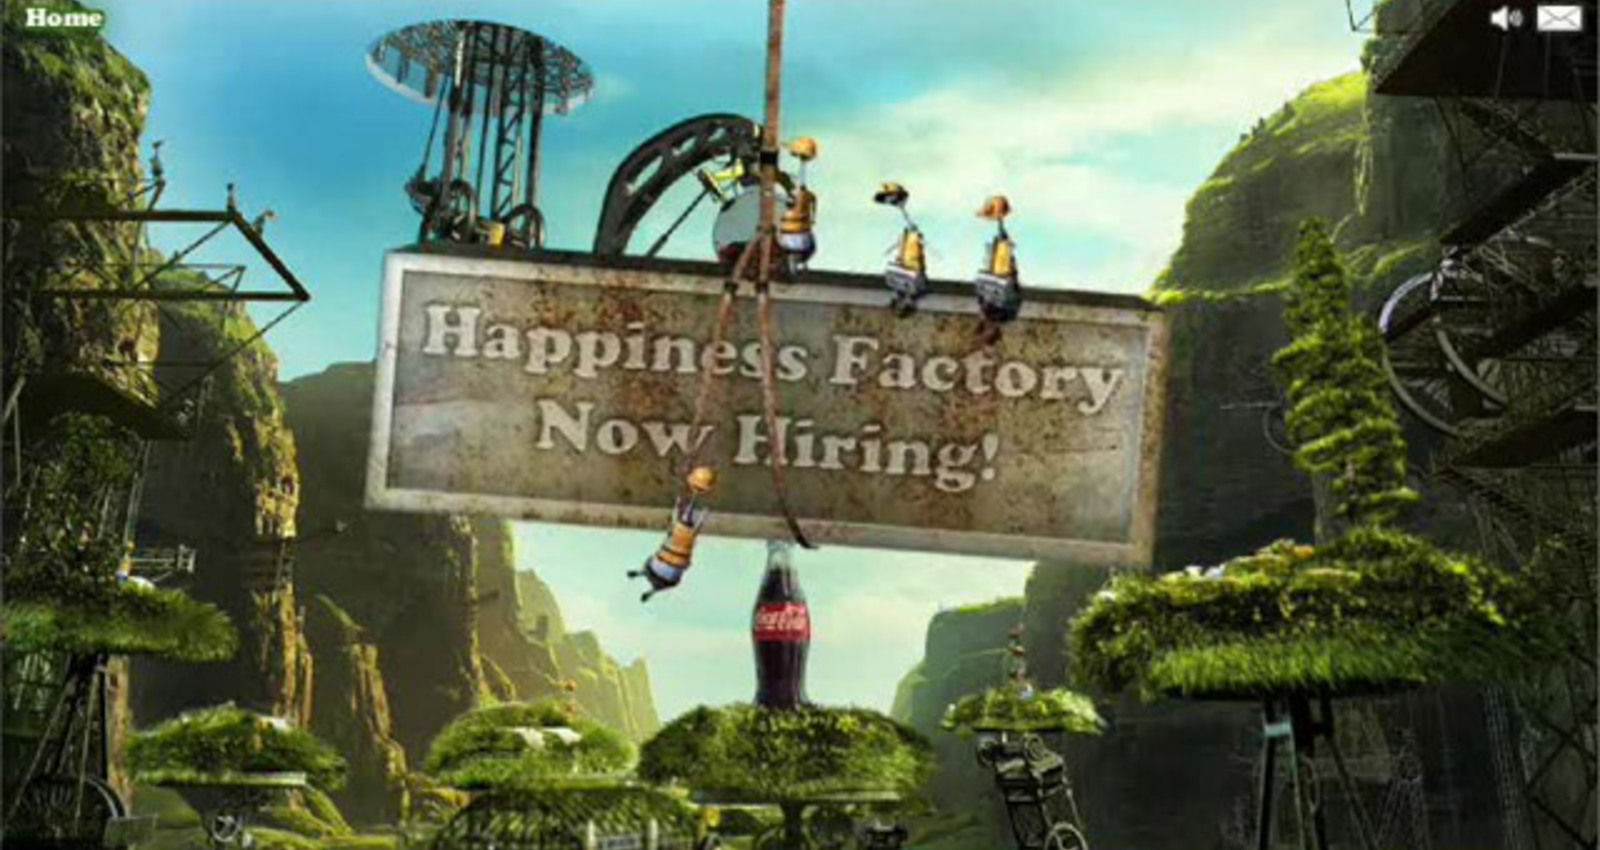 Happiness Factory - Now Hiring